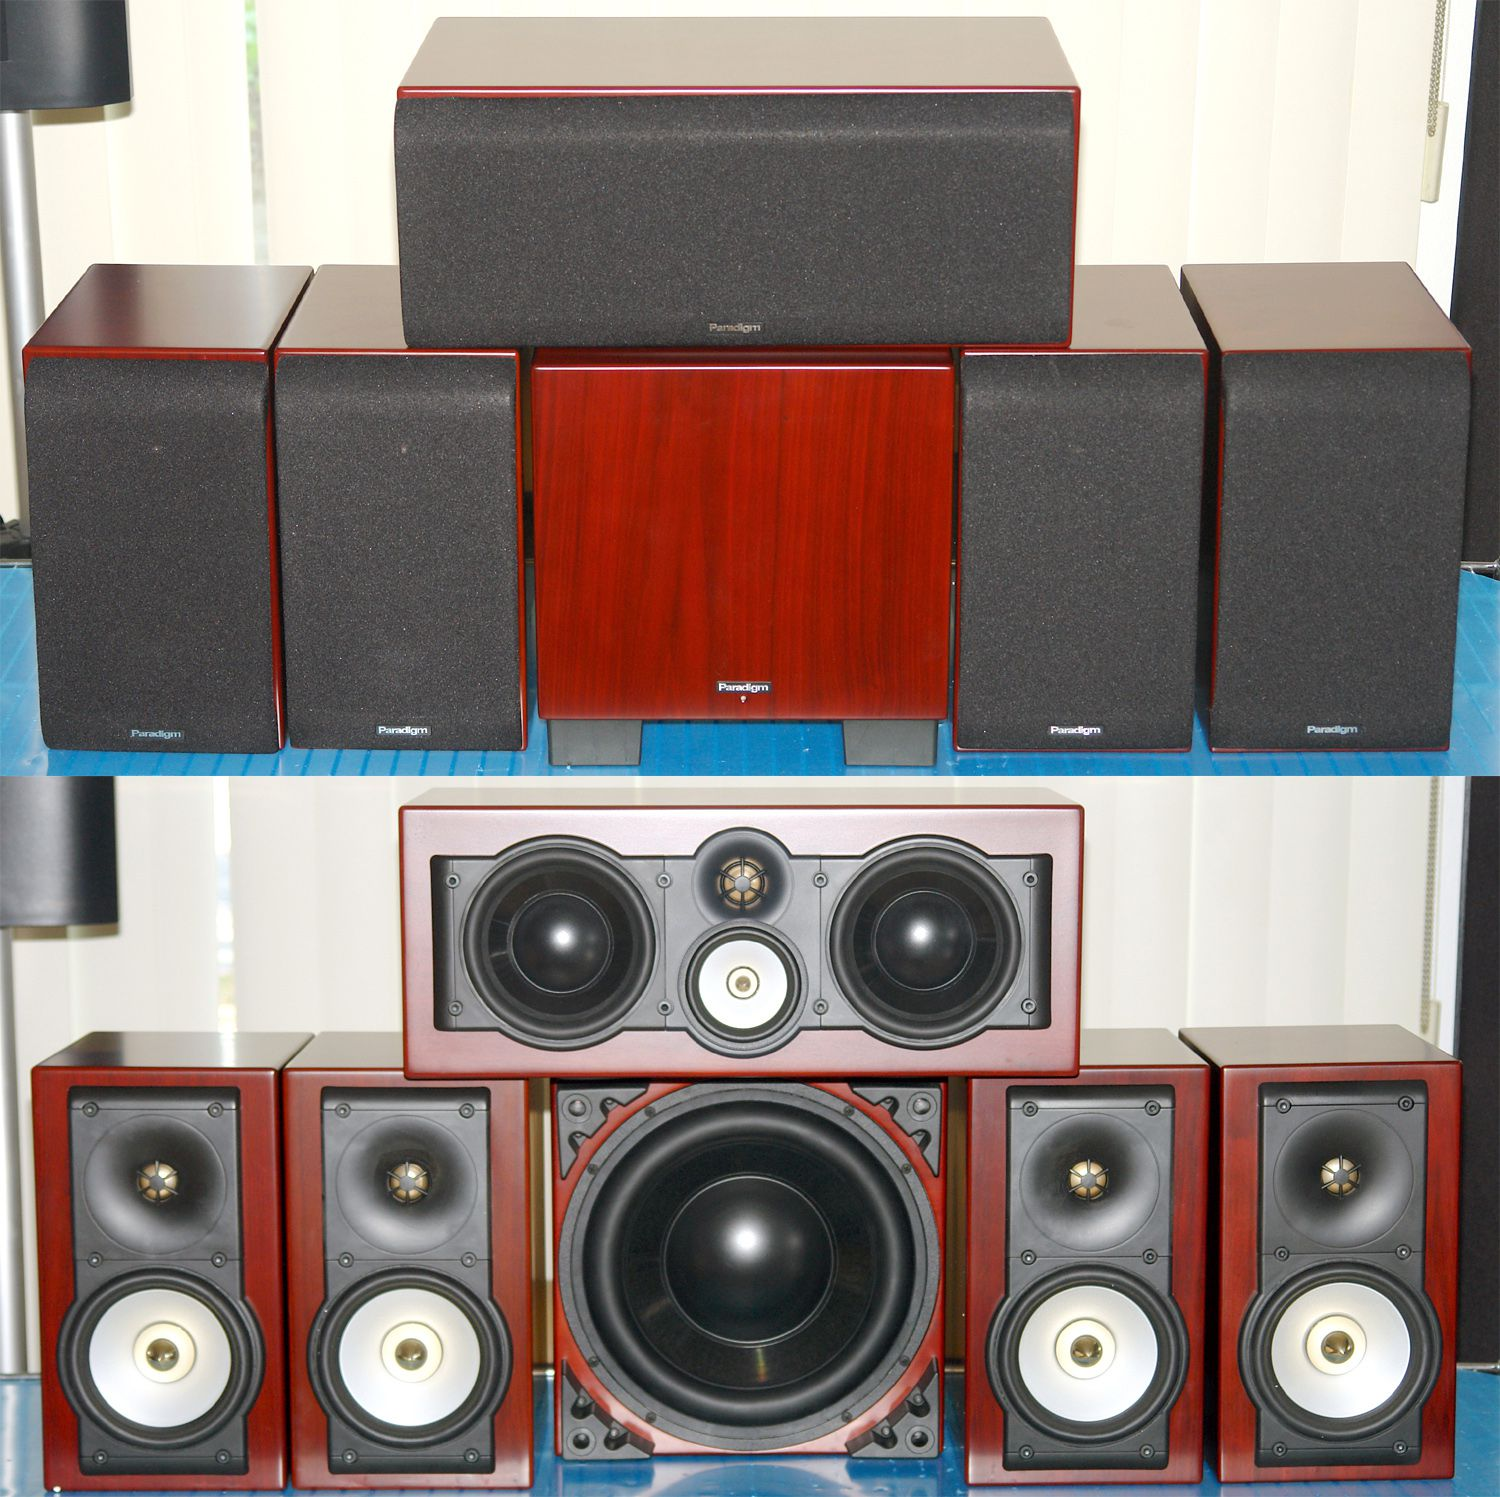 The Paradigm SE Series Home Theater Speaker System Reviewed